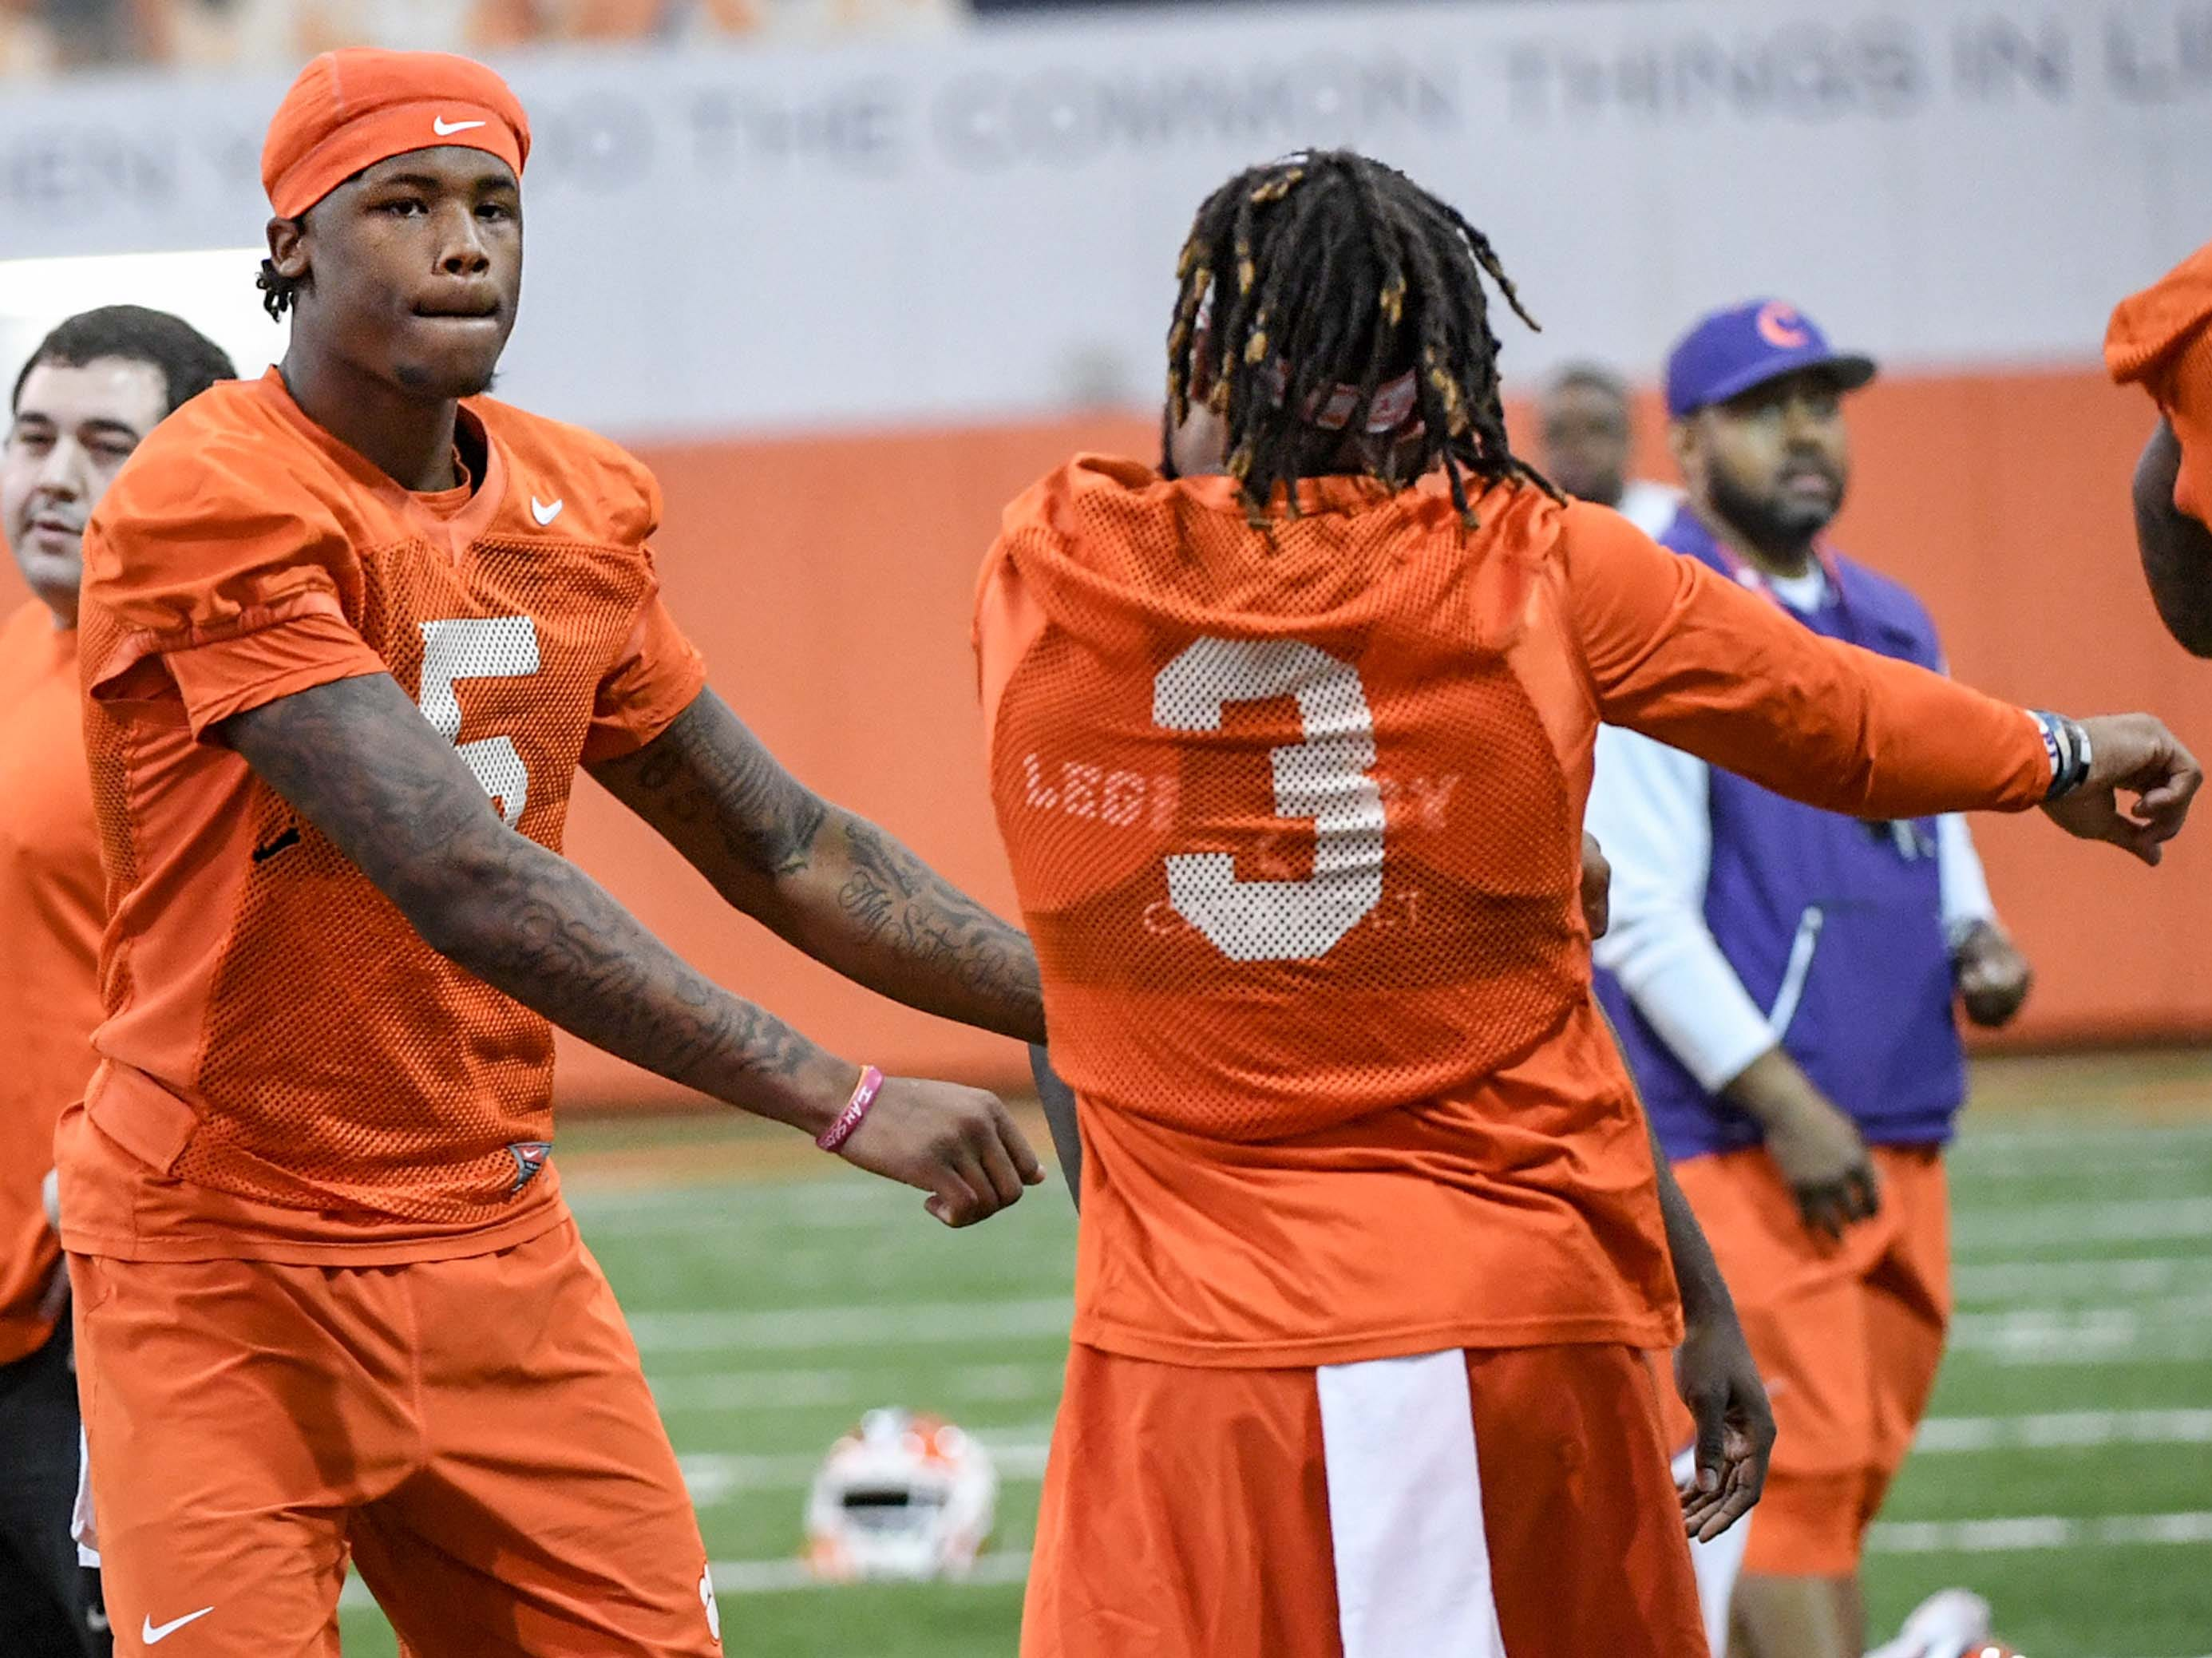 Clemson wide receiver Tee Higgins (5), left, and Clemson wide receiver Amari Rodgers (3) greet each other during practice at the Poe Indoor Facility in Clemson Friday.